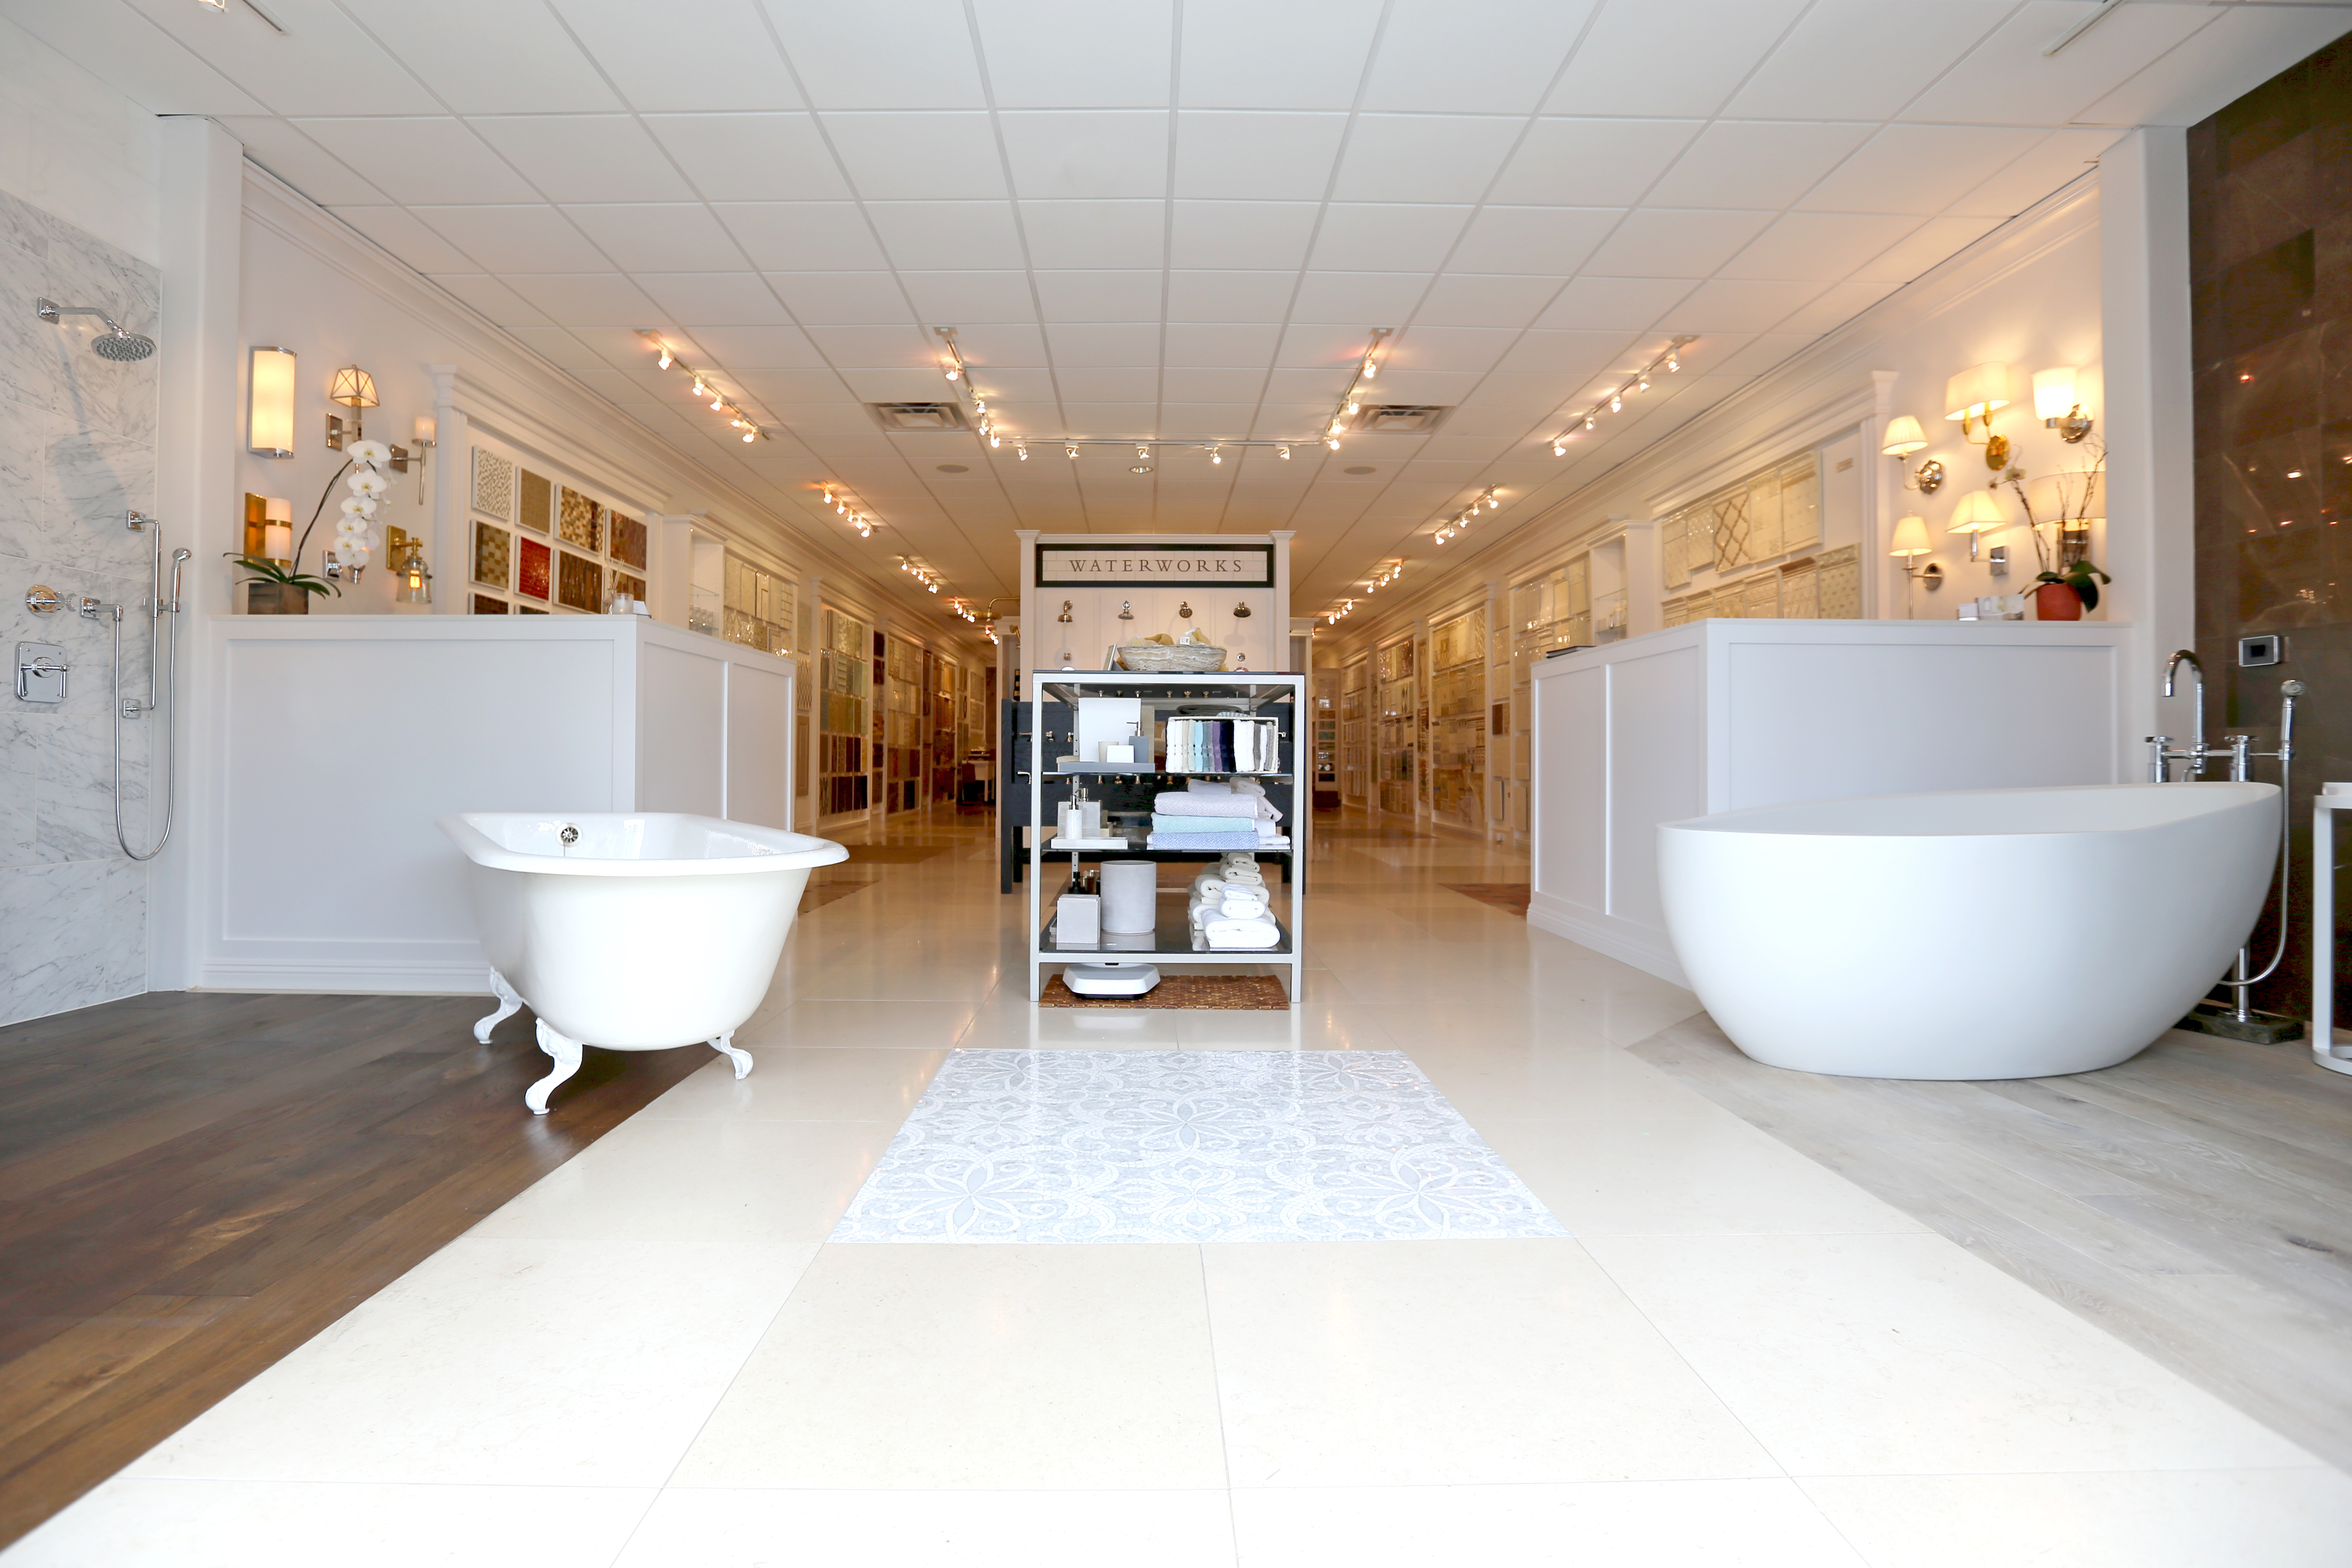 corrimal showroom tiles us about discount bathtub